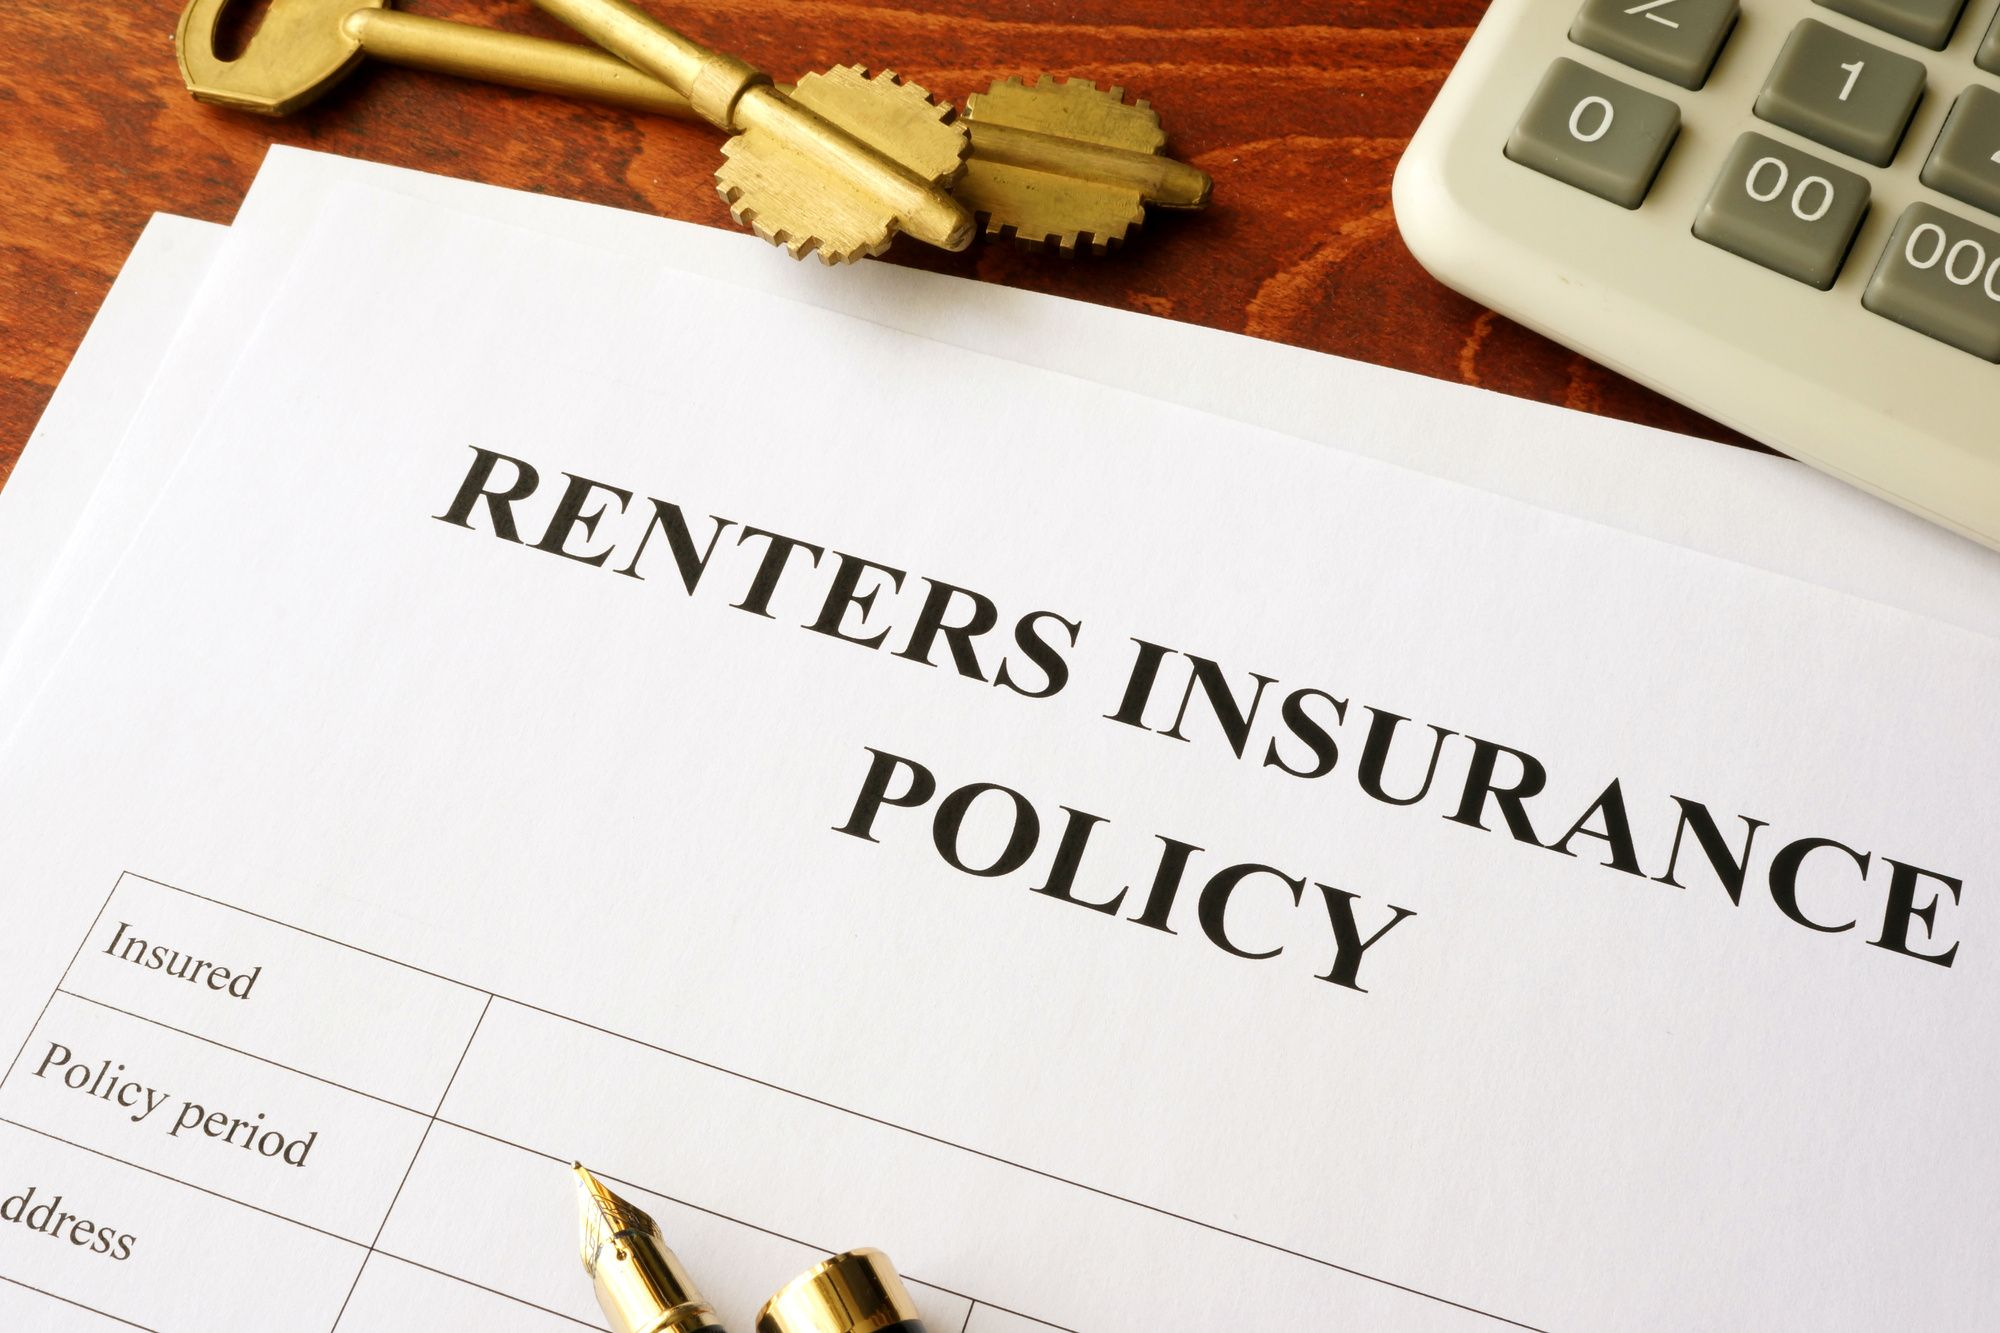 Pin on renters insurance quotes online